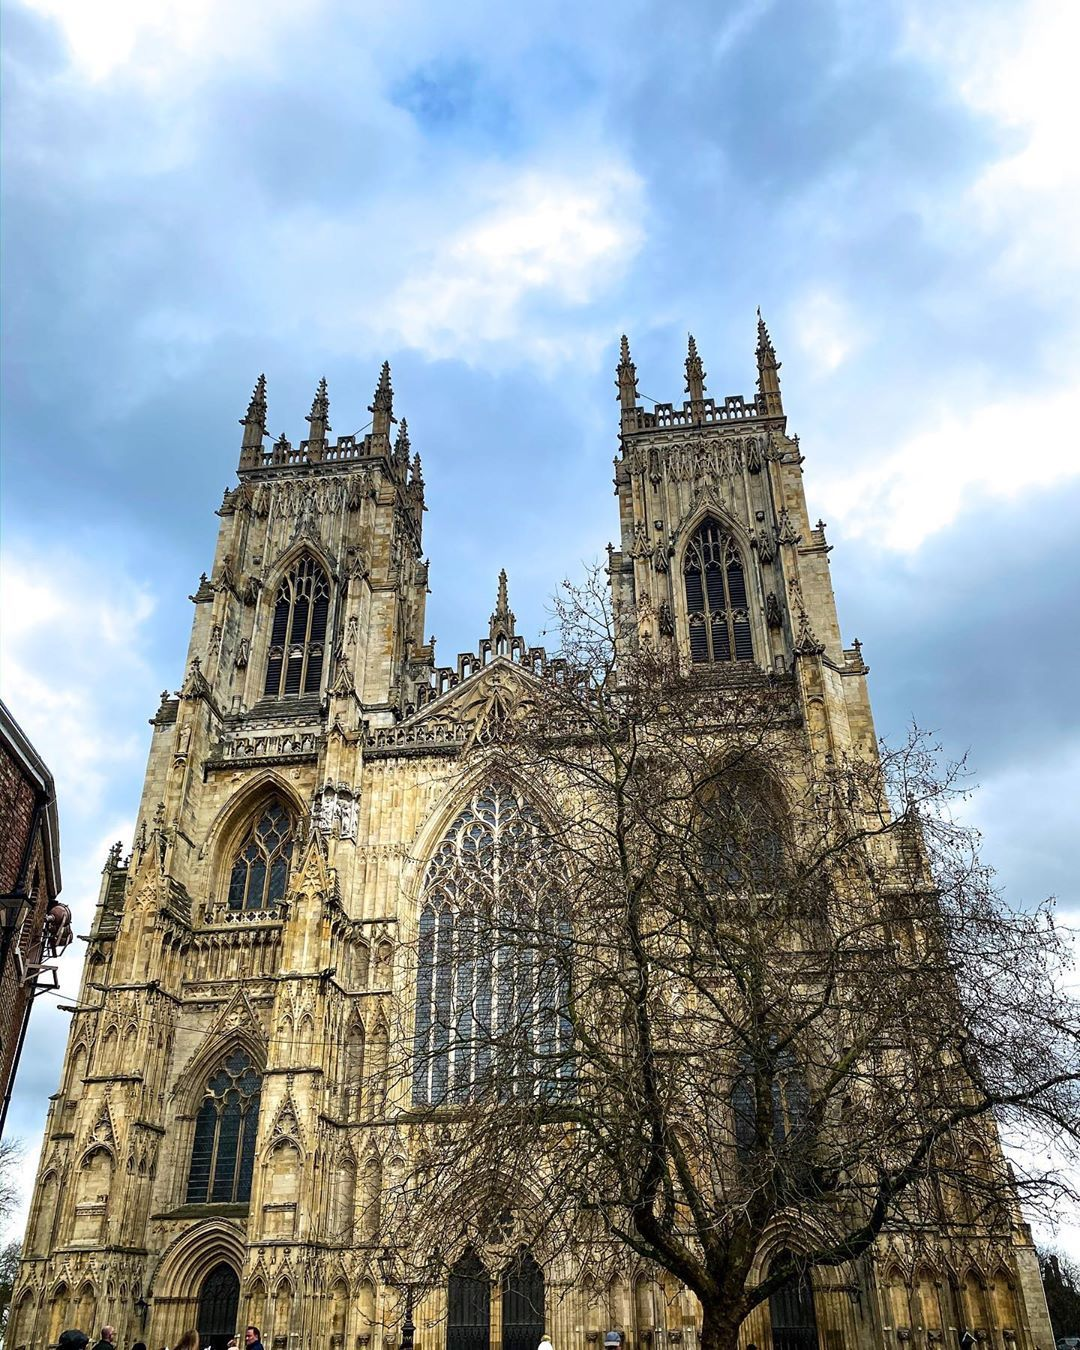 Marie Aka Meme S Instagram Post York Minster Dating Back To The 7th Century The Minster Is One Of The Largest In This In 2020 Minster Travel Instagram York Minster